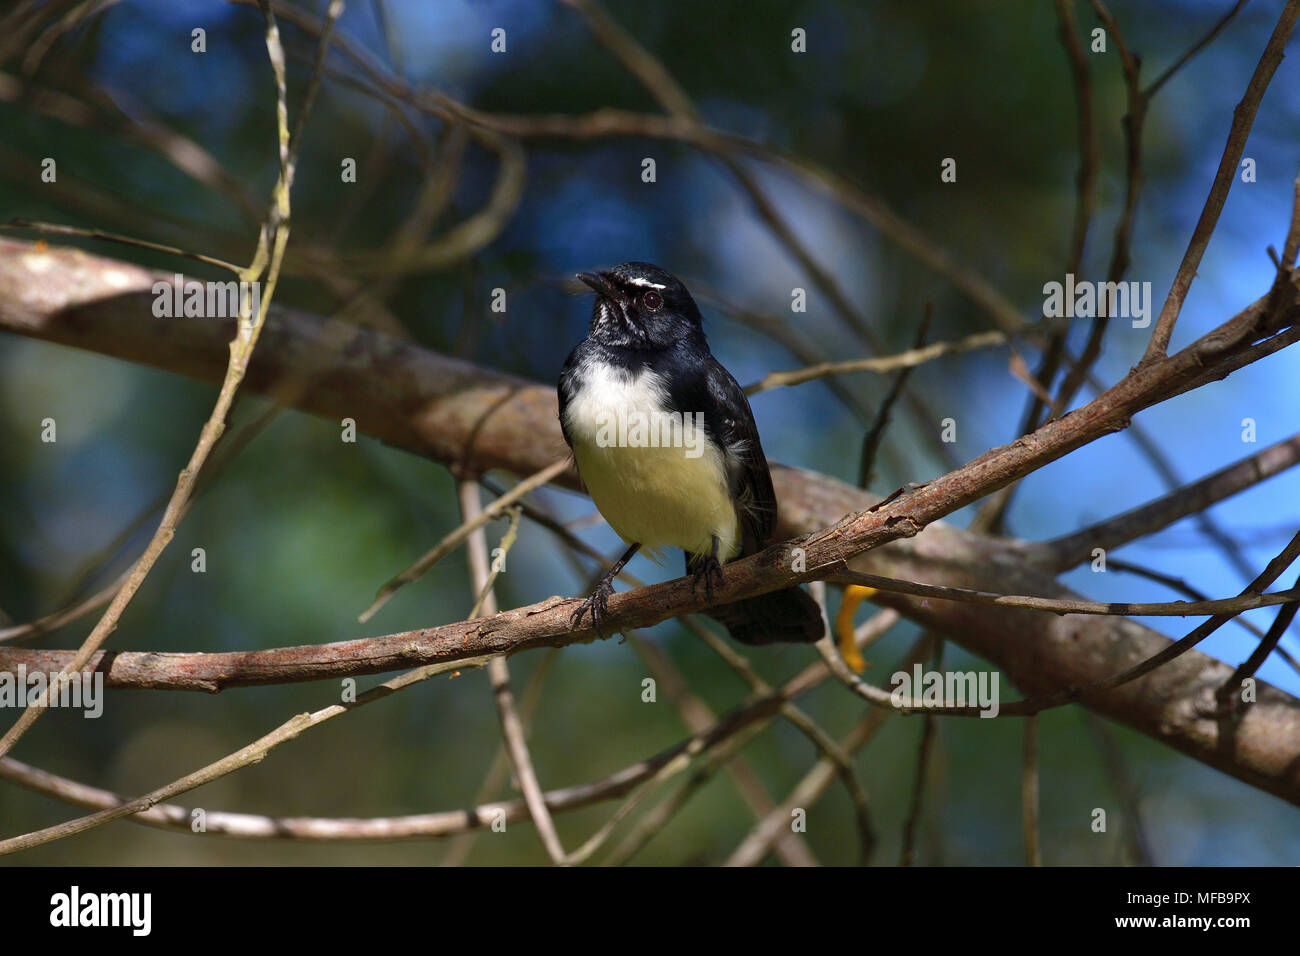 An Australian, Queensland Willie Wagtail, Rhipidura leucophrys resting on a Tree branch - Stock Image